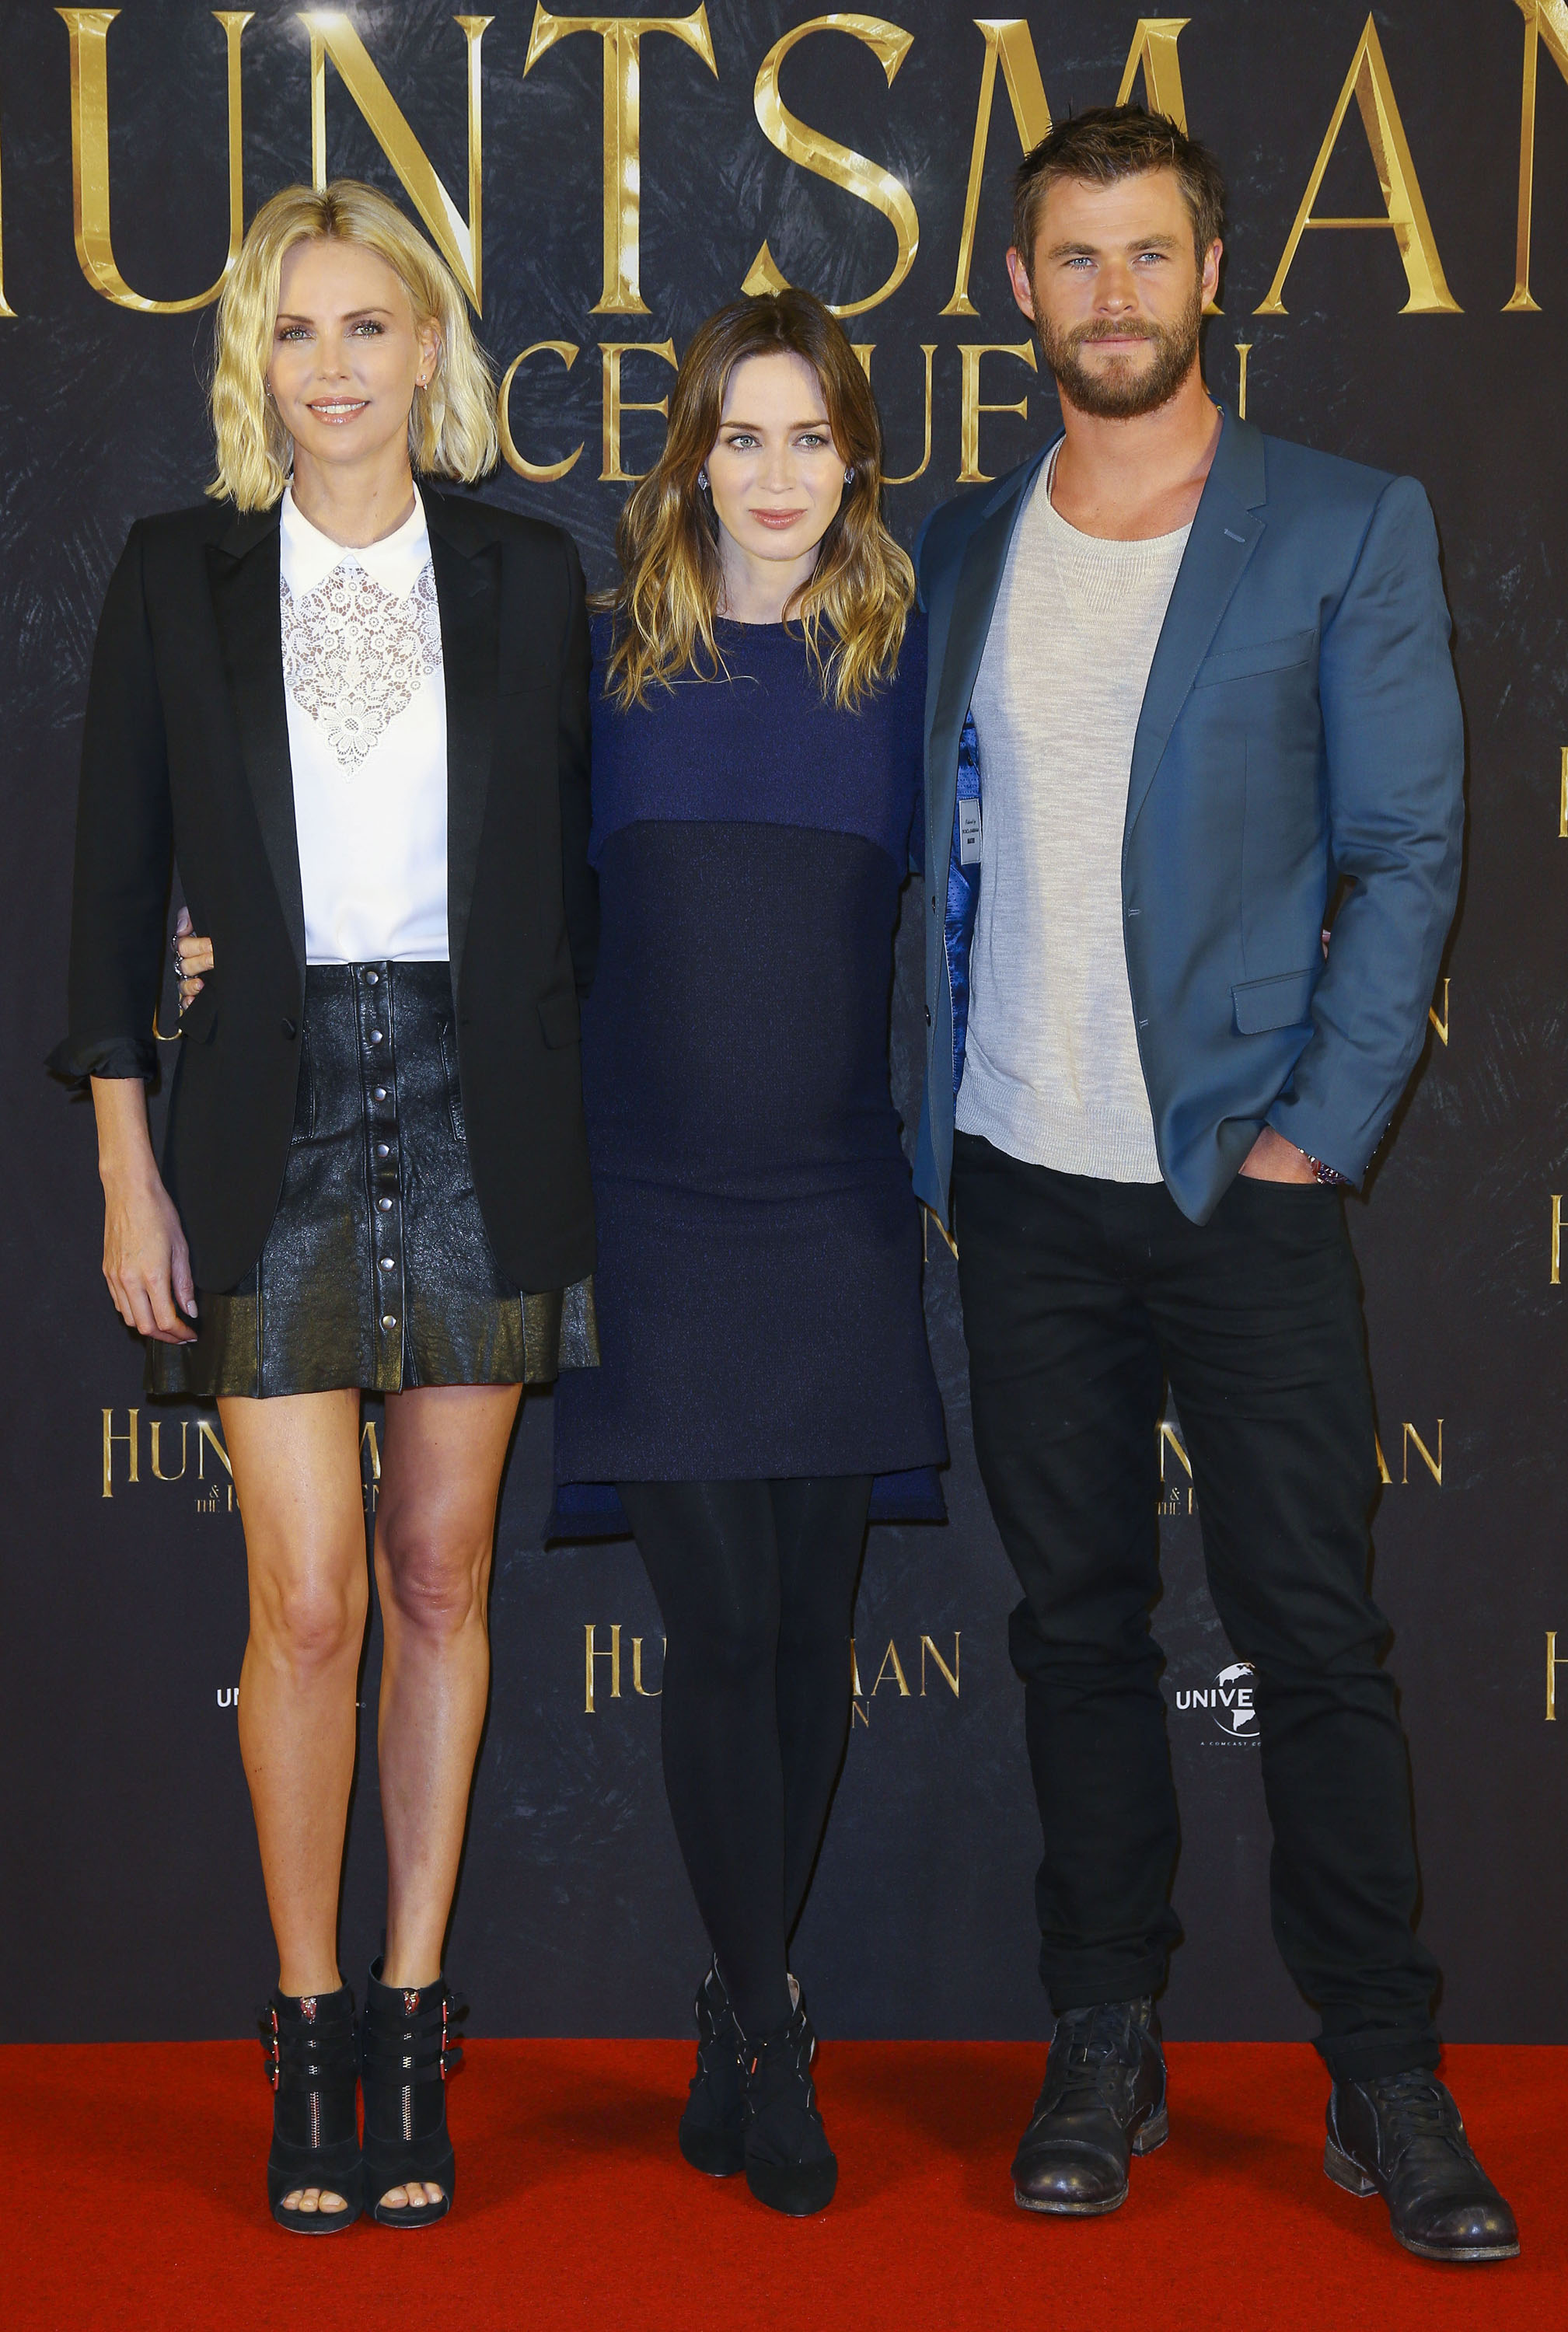 The -Huntsman- The- Ice -Queen- Photo- Call